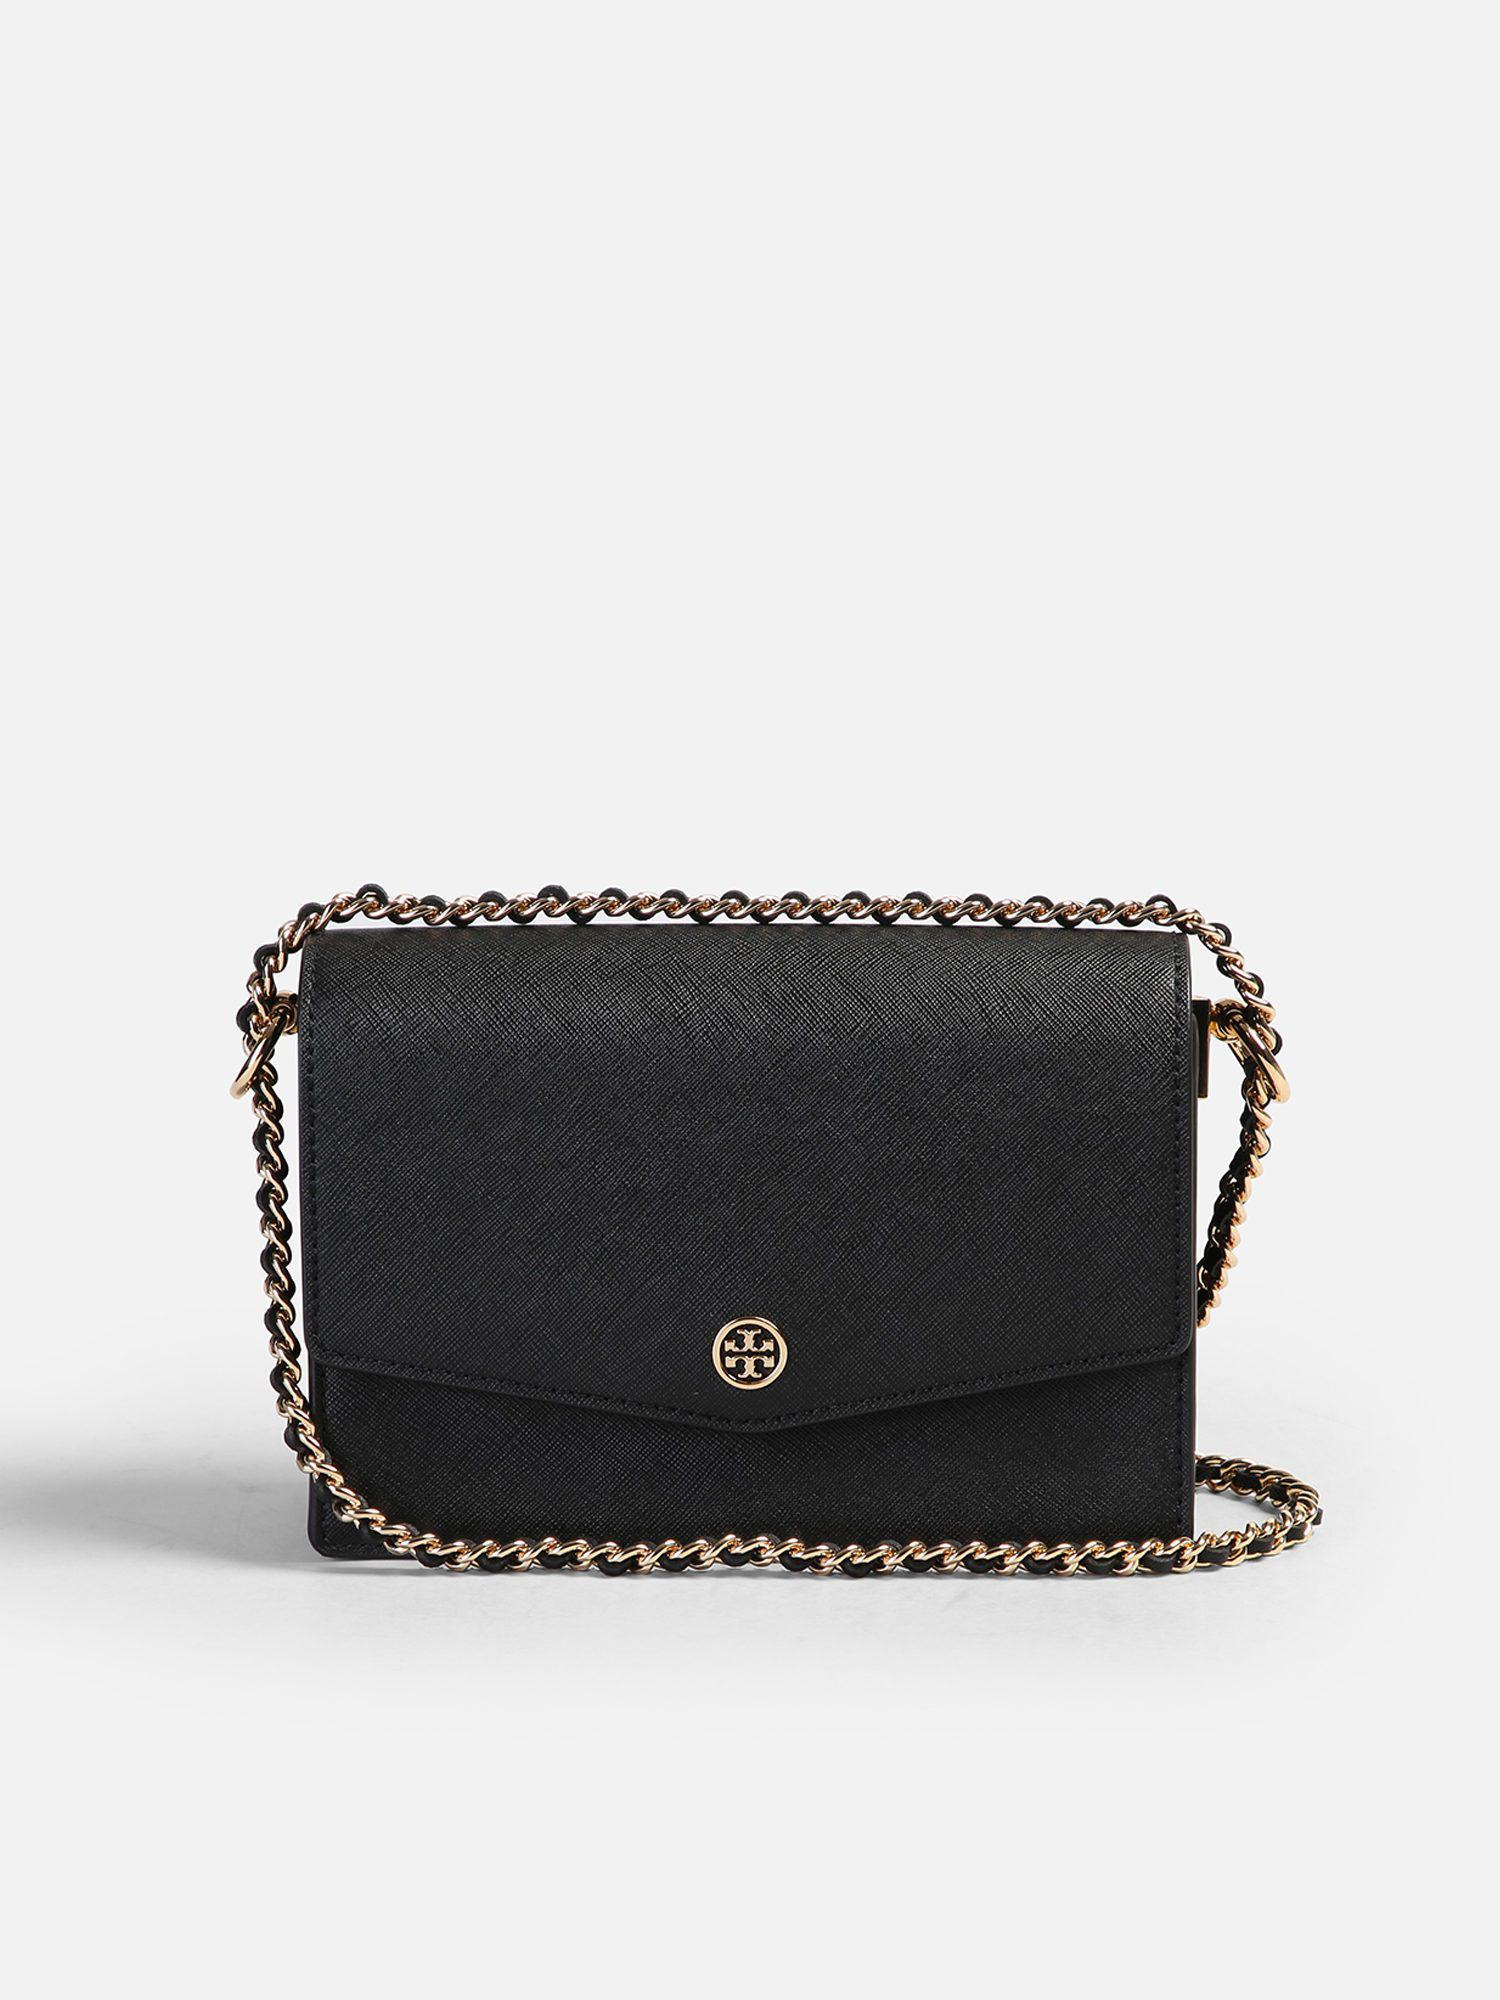 21a769fe080 Lyst - Tory Burch Mini Robinson Leather Bag in Black